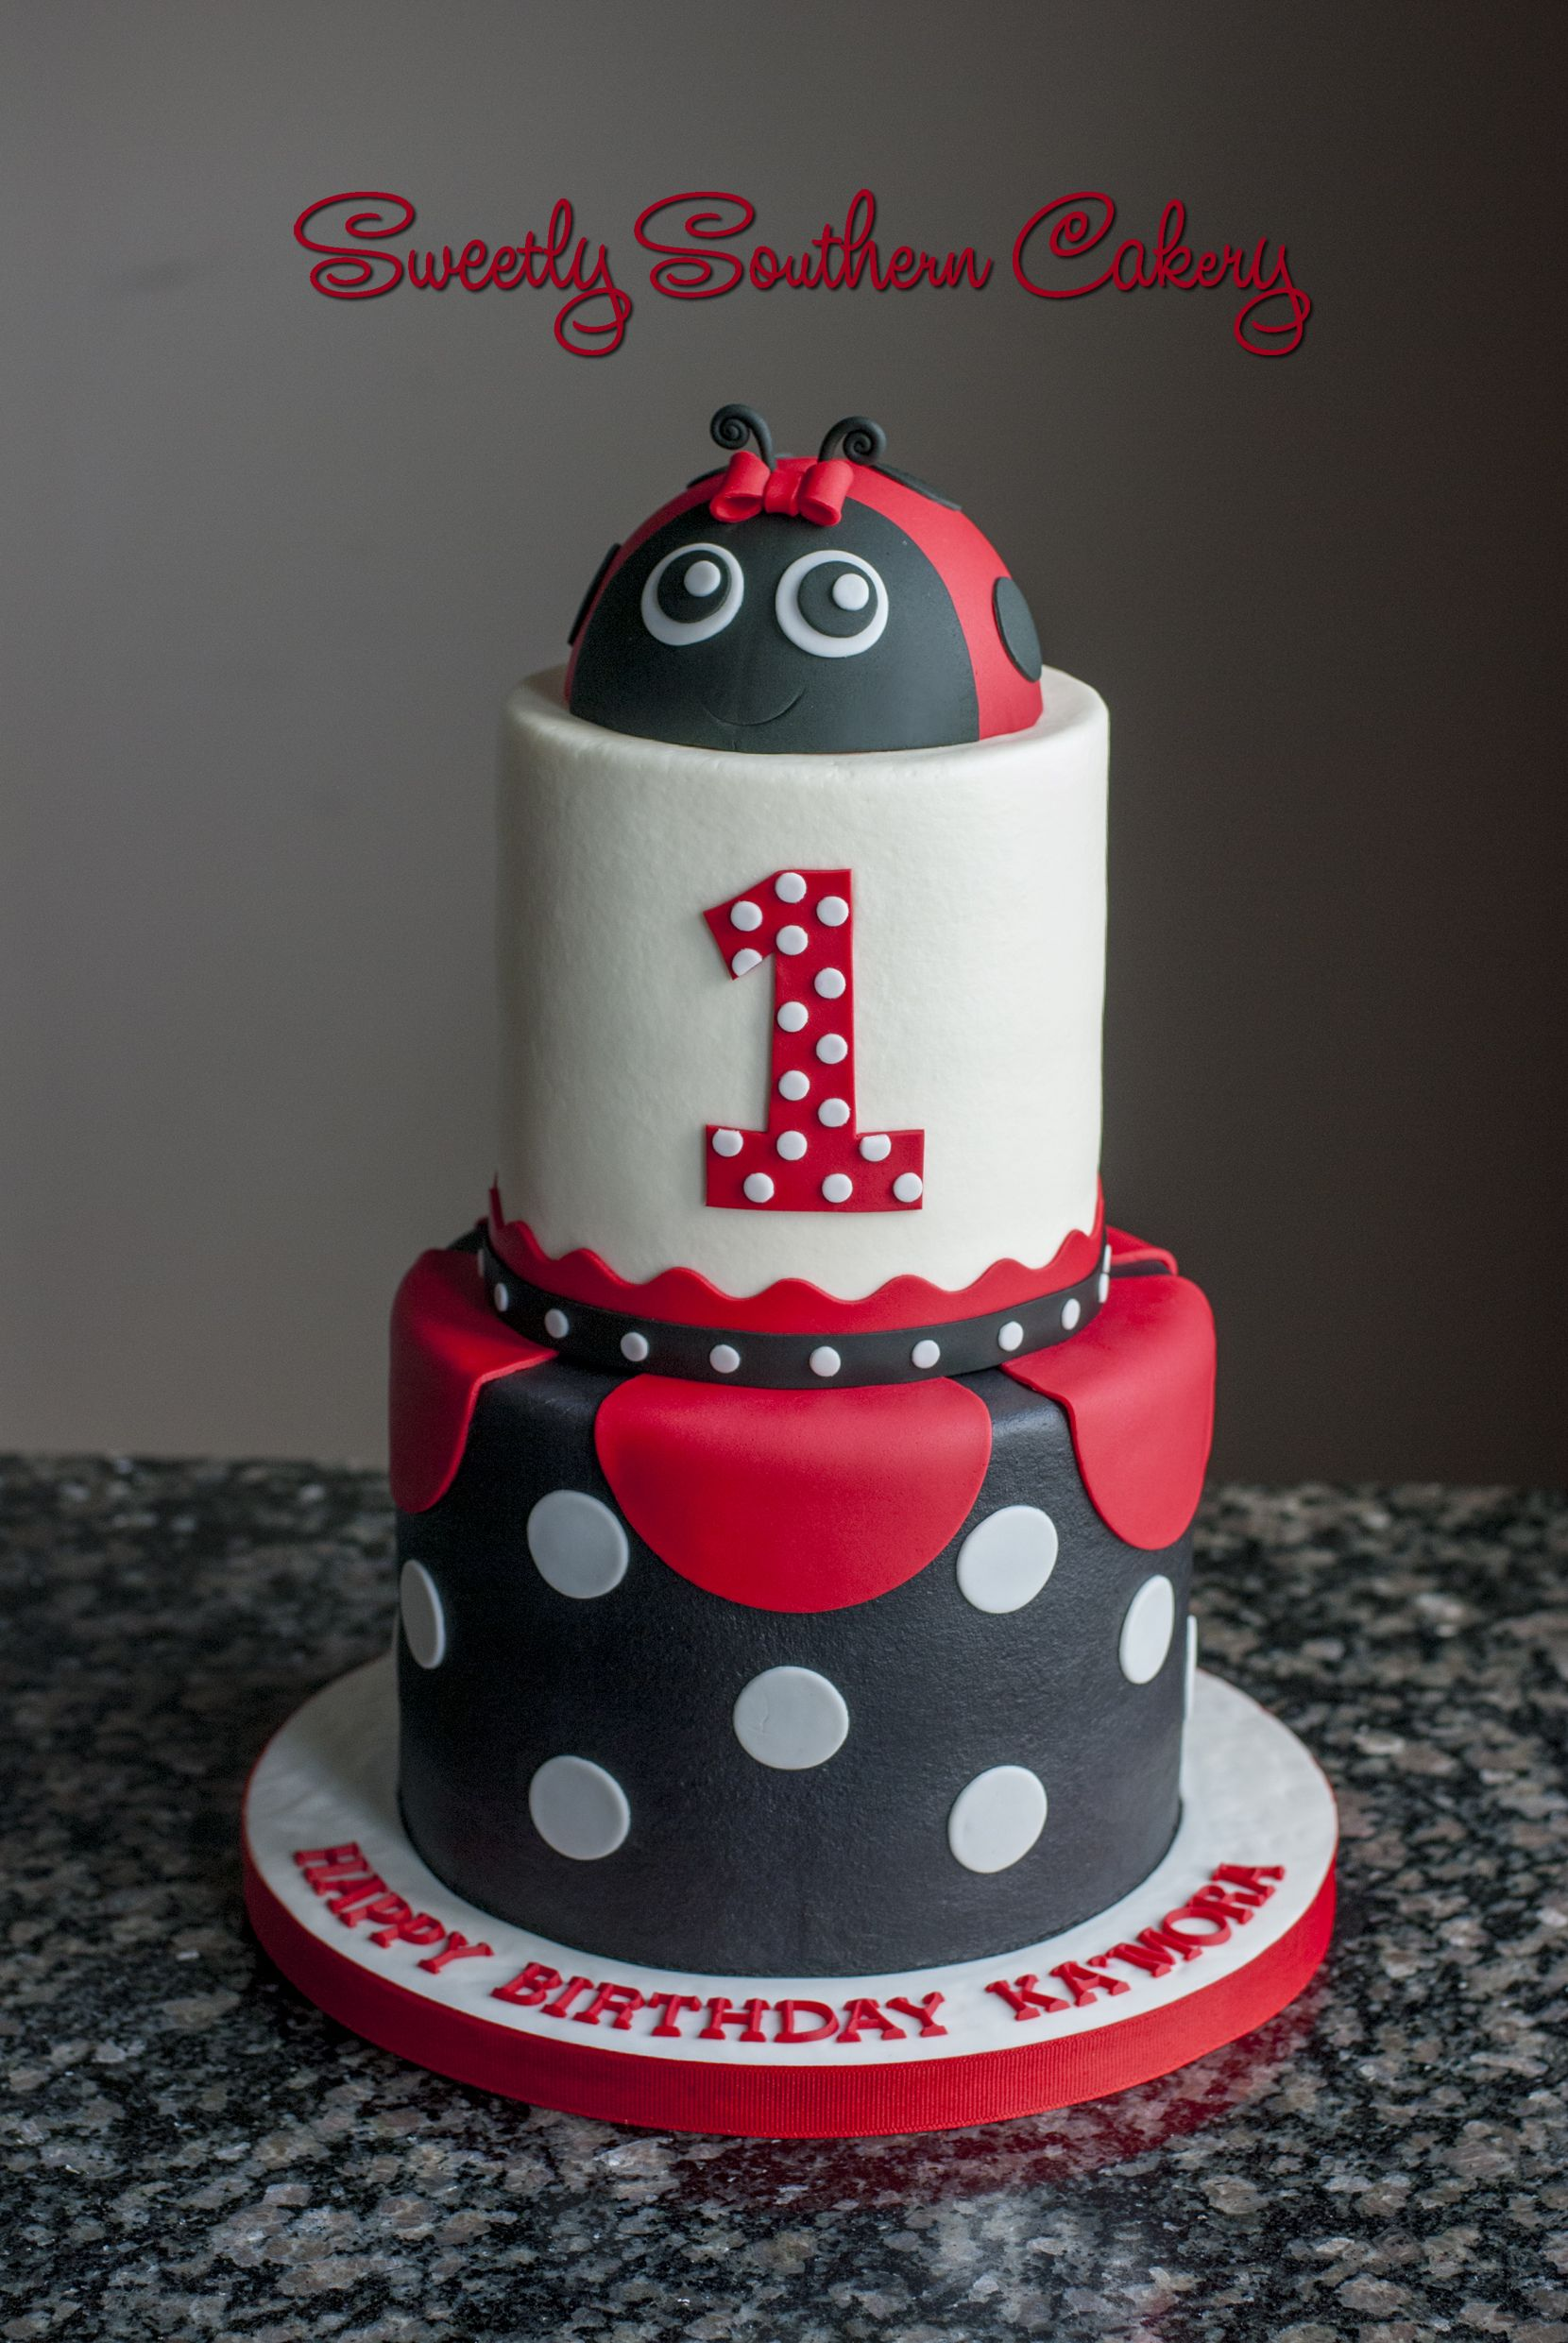 Ladybug First Birthday Cake Sweetly Southern Cakes 2016